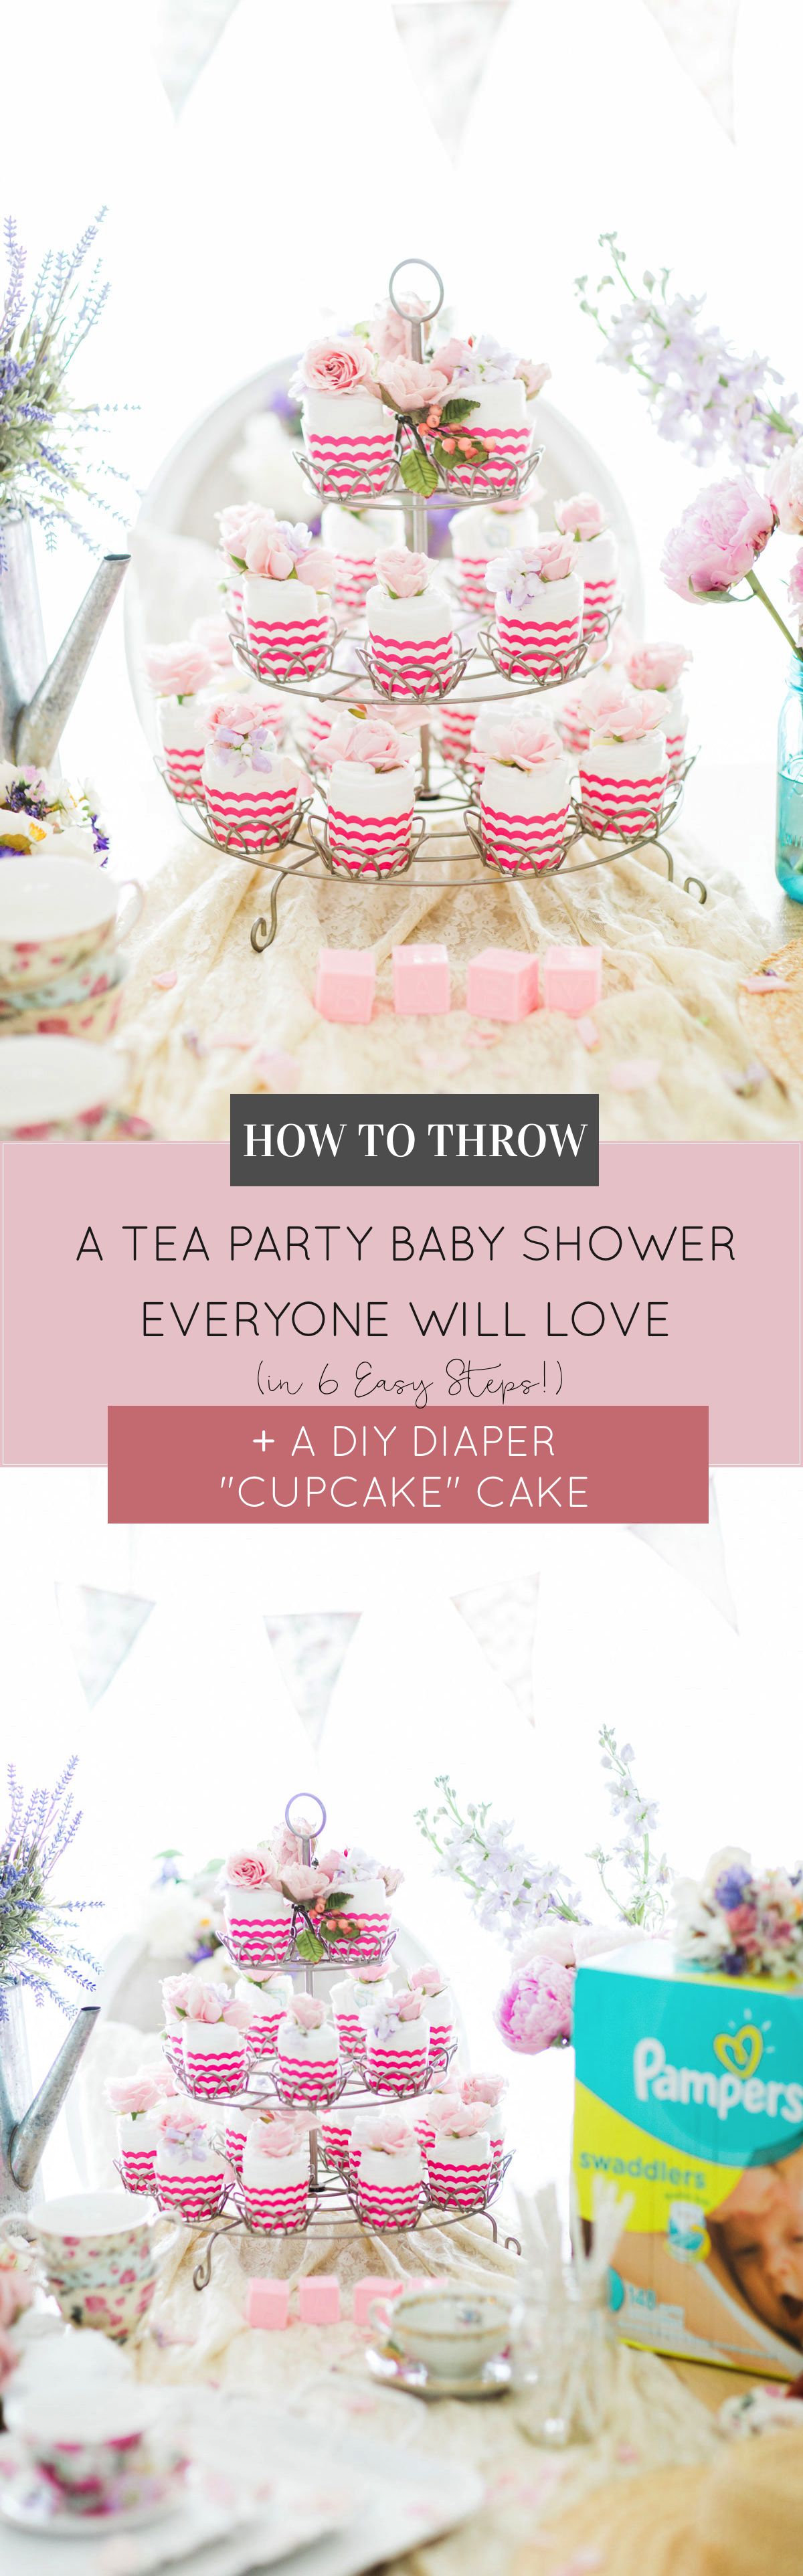 Lifestyle blogger Lexi of Glitter, Inc. shares how to throw a tea party baby shower in 6 easy steps; plus a DIY diaper cake using cupcake liners! #babyshower #teaparty #teapartybabyshower #shower #teapartyshower #party #newbaby #baby | Click through for the details. | glitterinc.com | @glitterinc